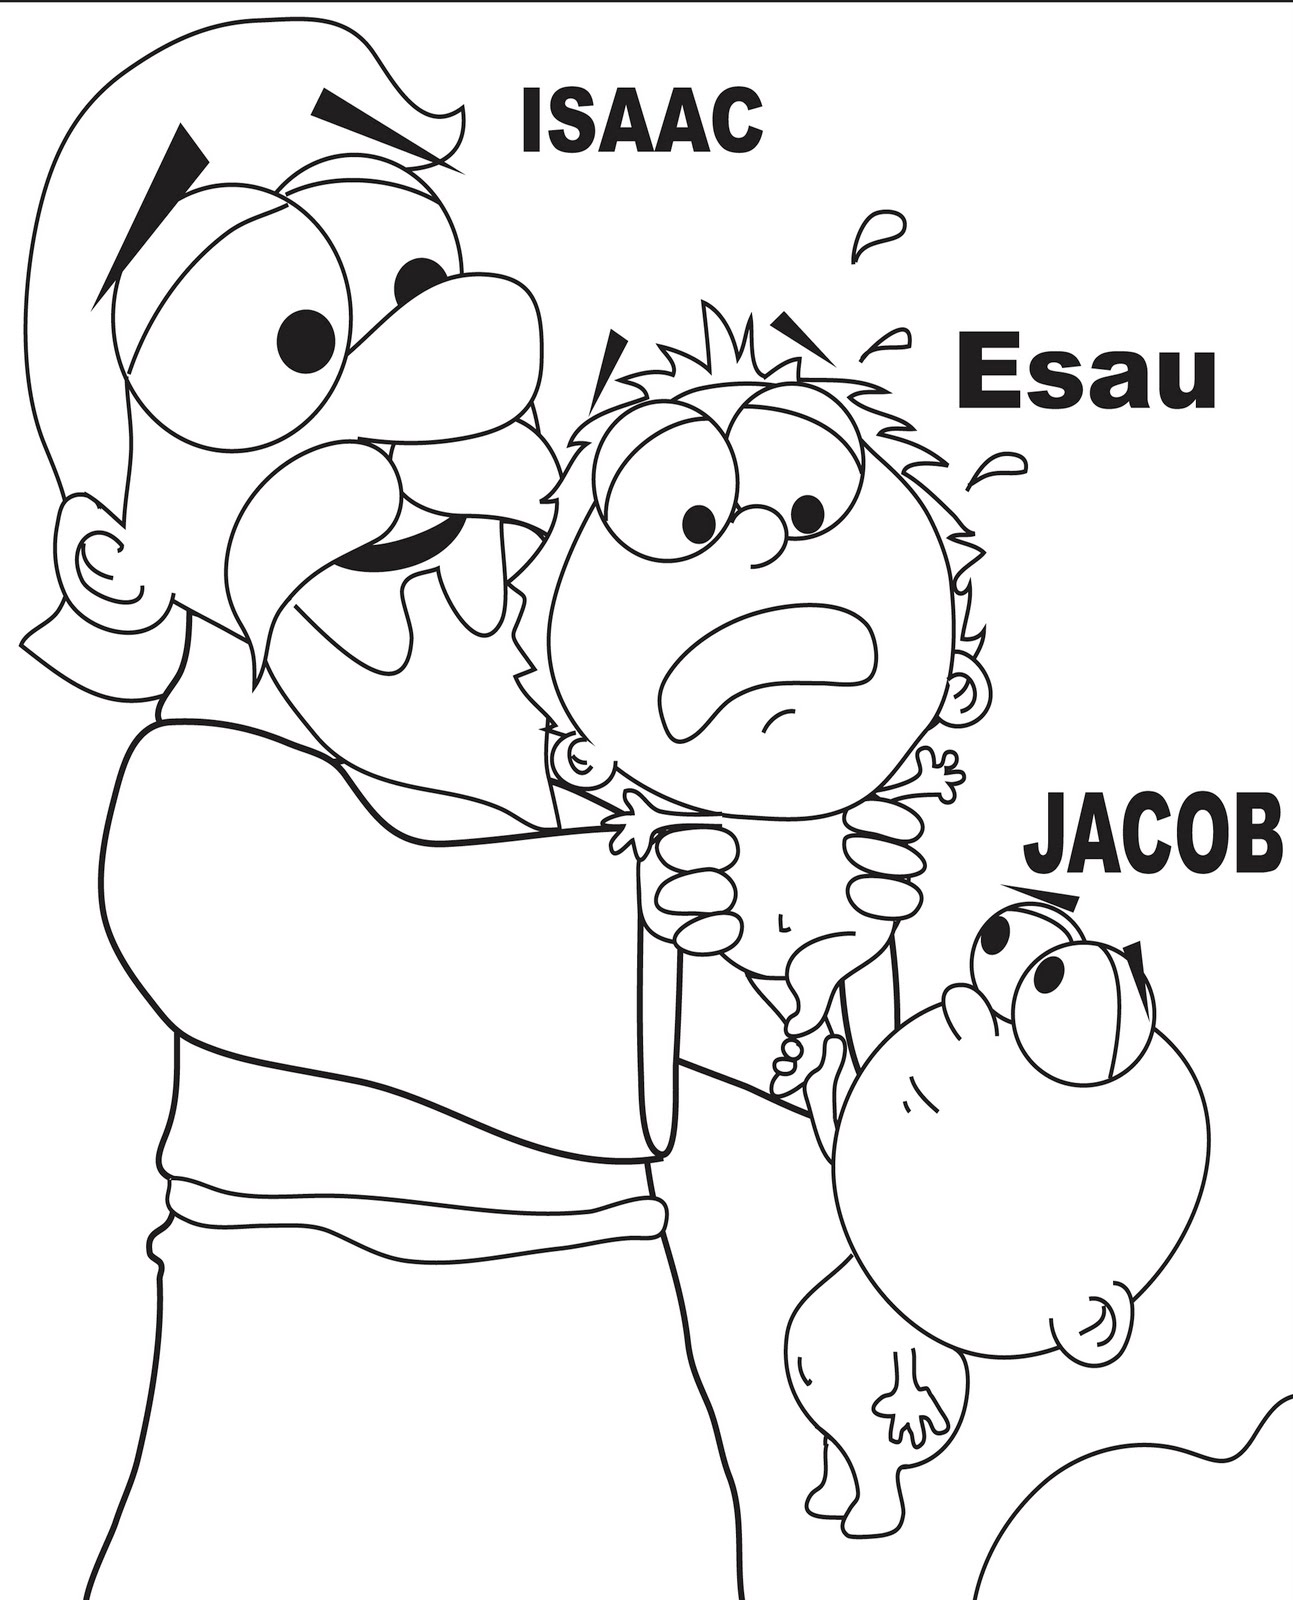 baby isaac bible coloring pages - photo#31